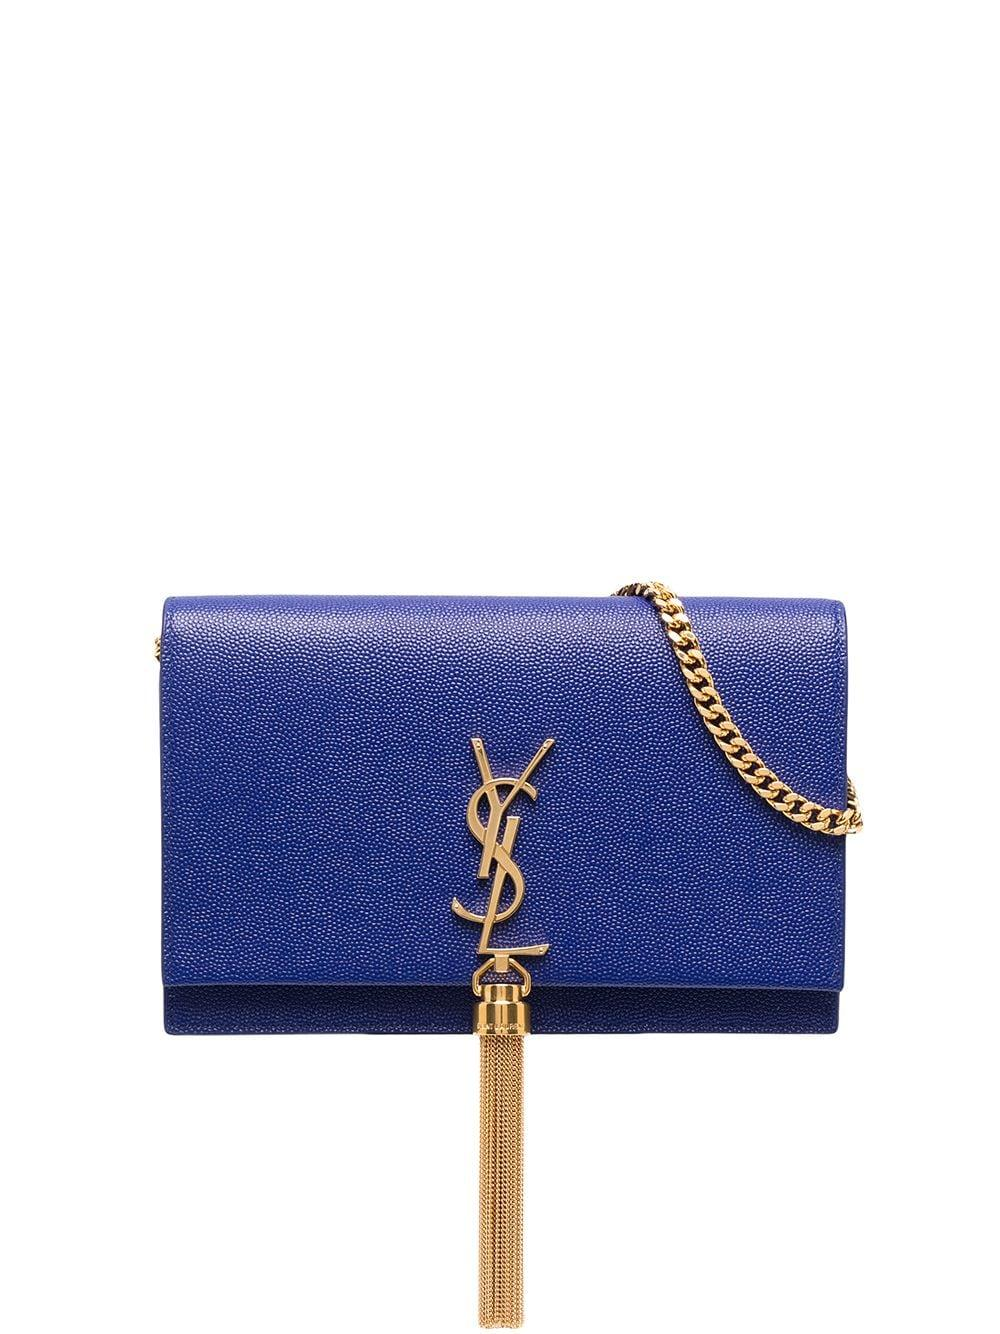 Kate Chain Wallet Item # 452159BOW0J